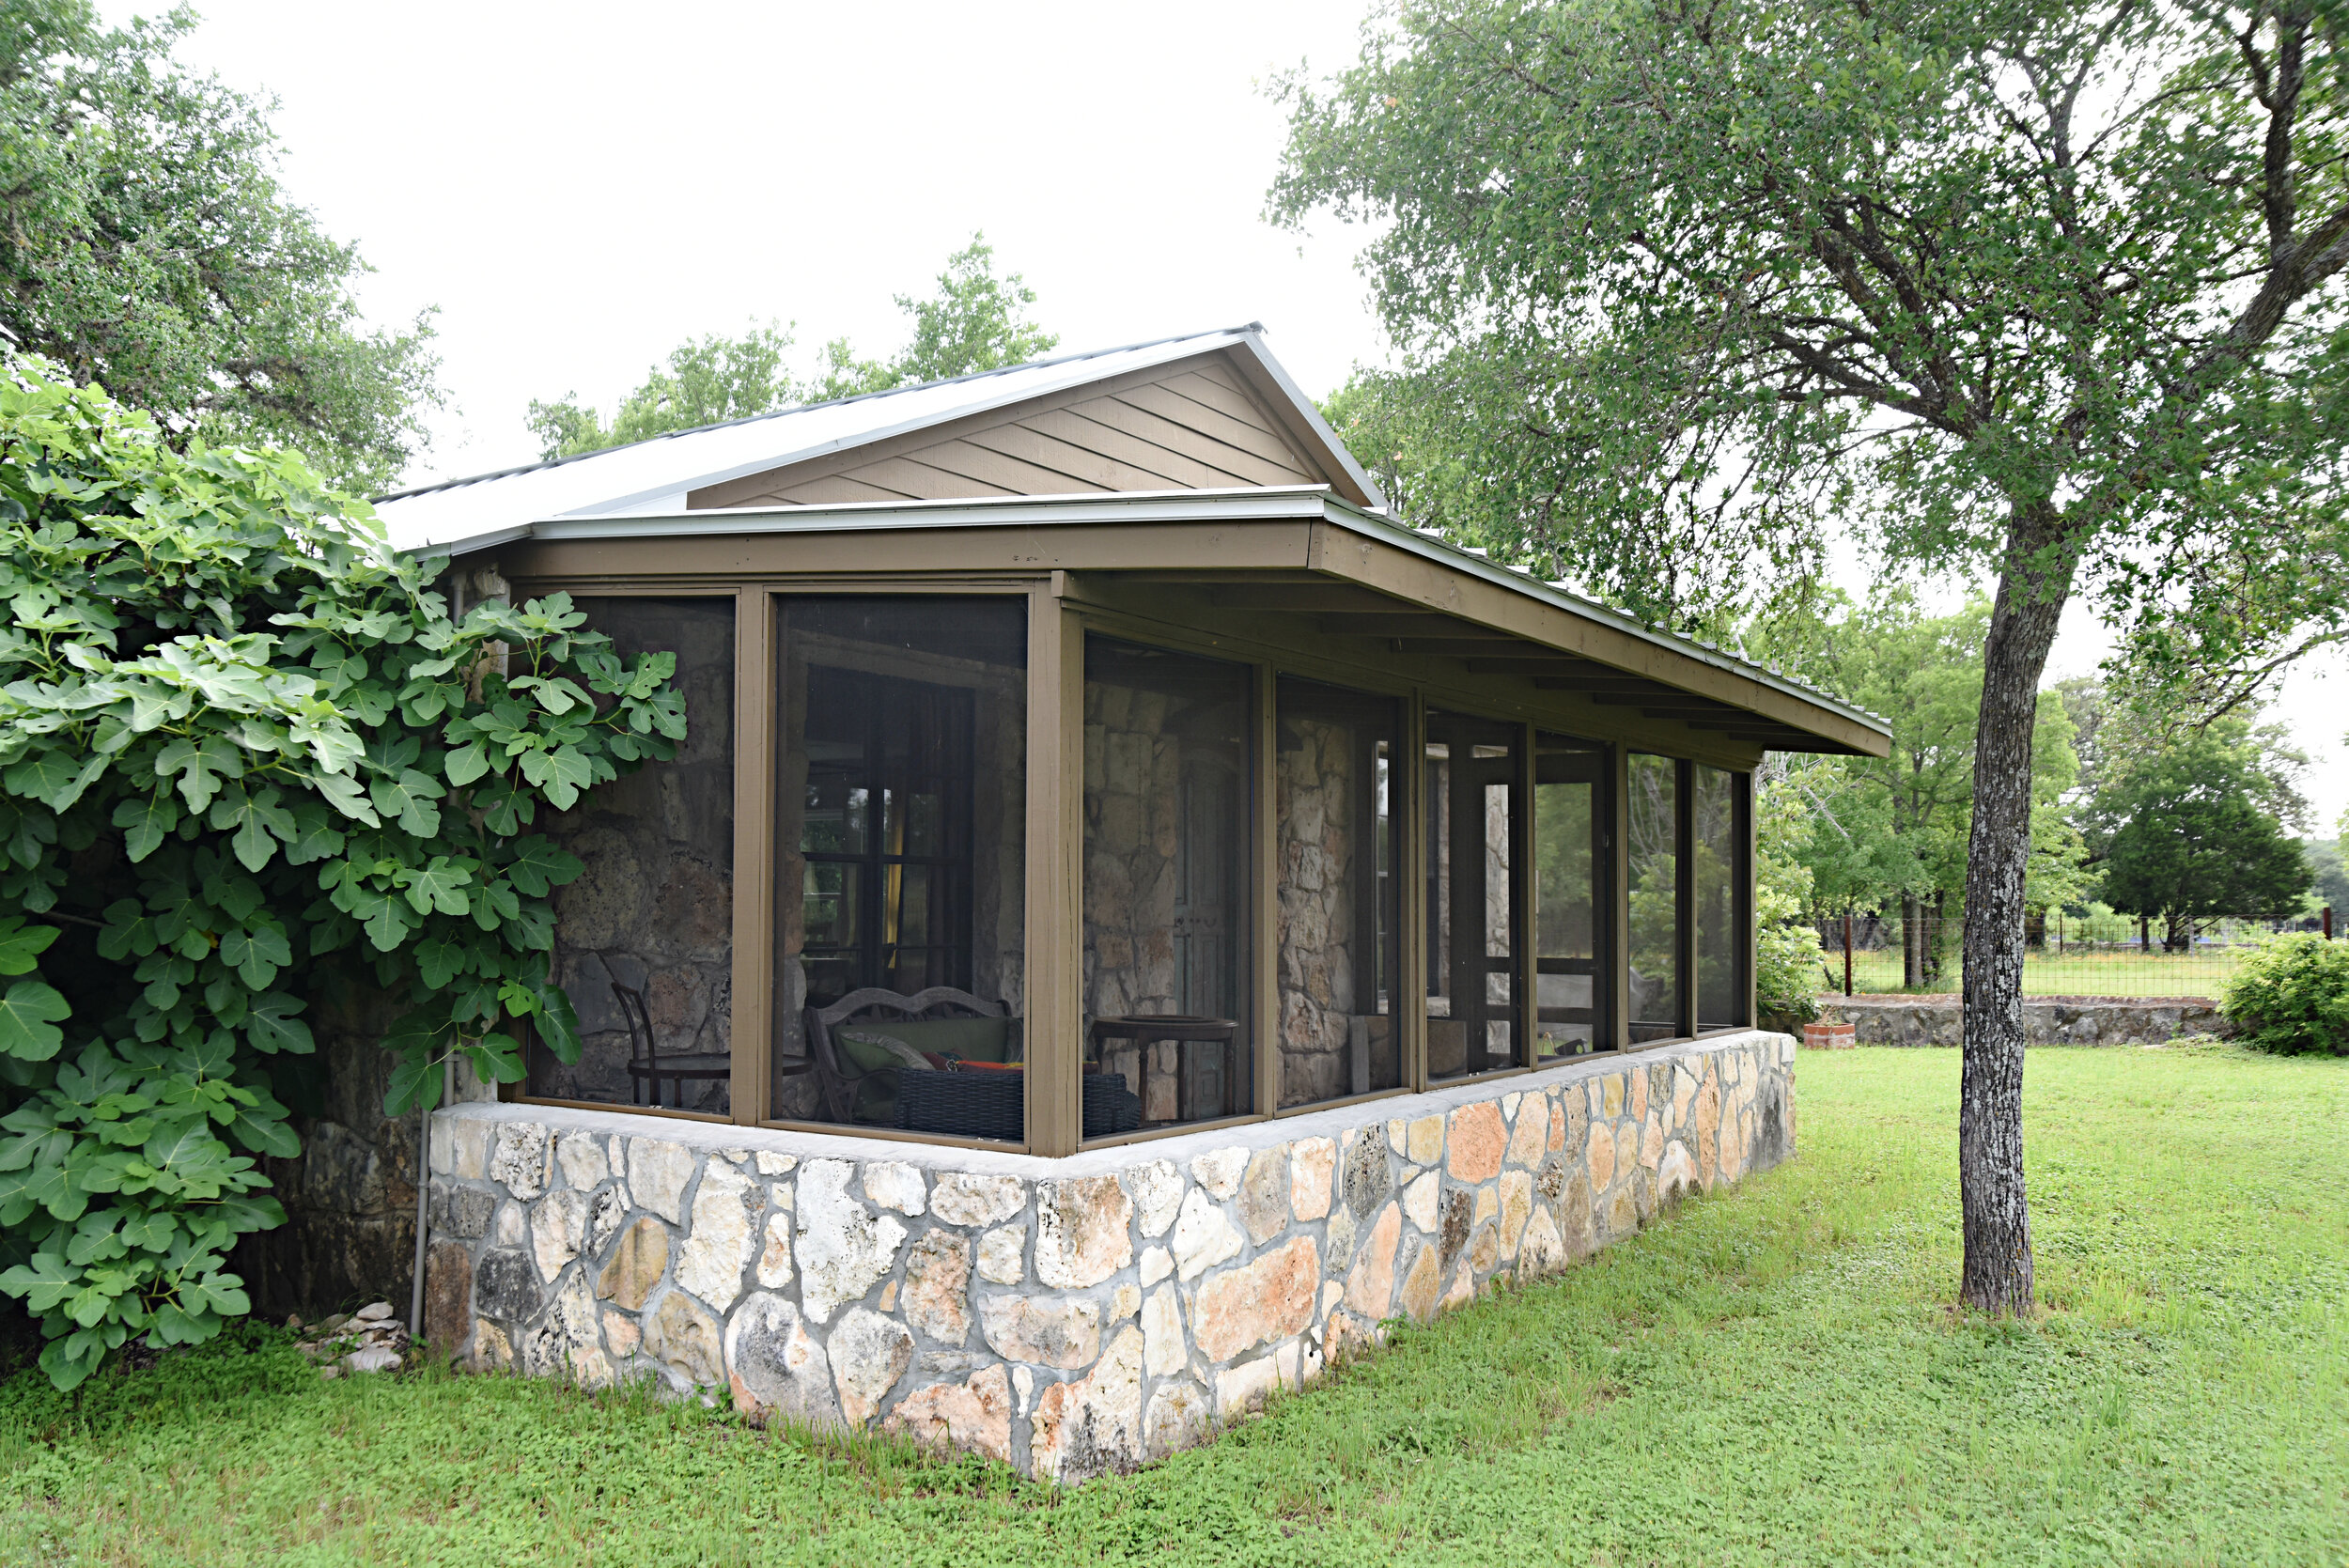 Reserve The Rockhouse at the beautiful Camino Ranchito in Wimberley, Texas nestled in the Texas Hill Country. Enjoy rustic but modern ambiance and privacy.